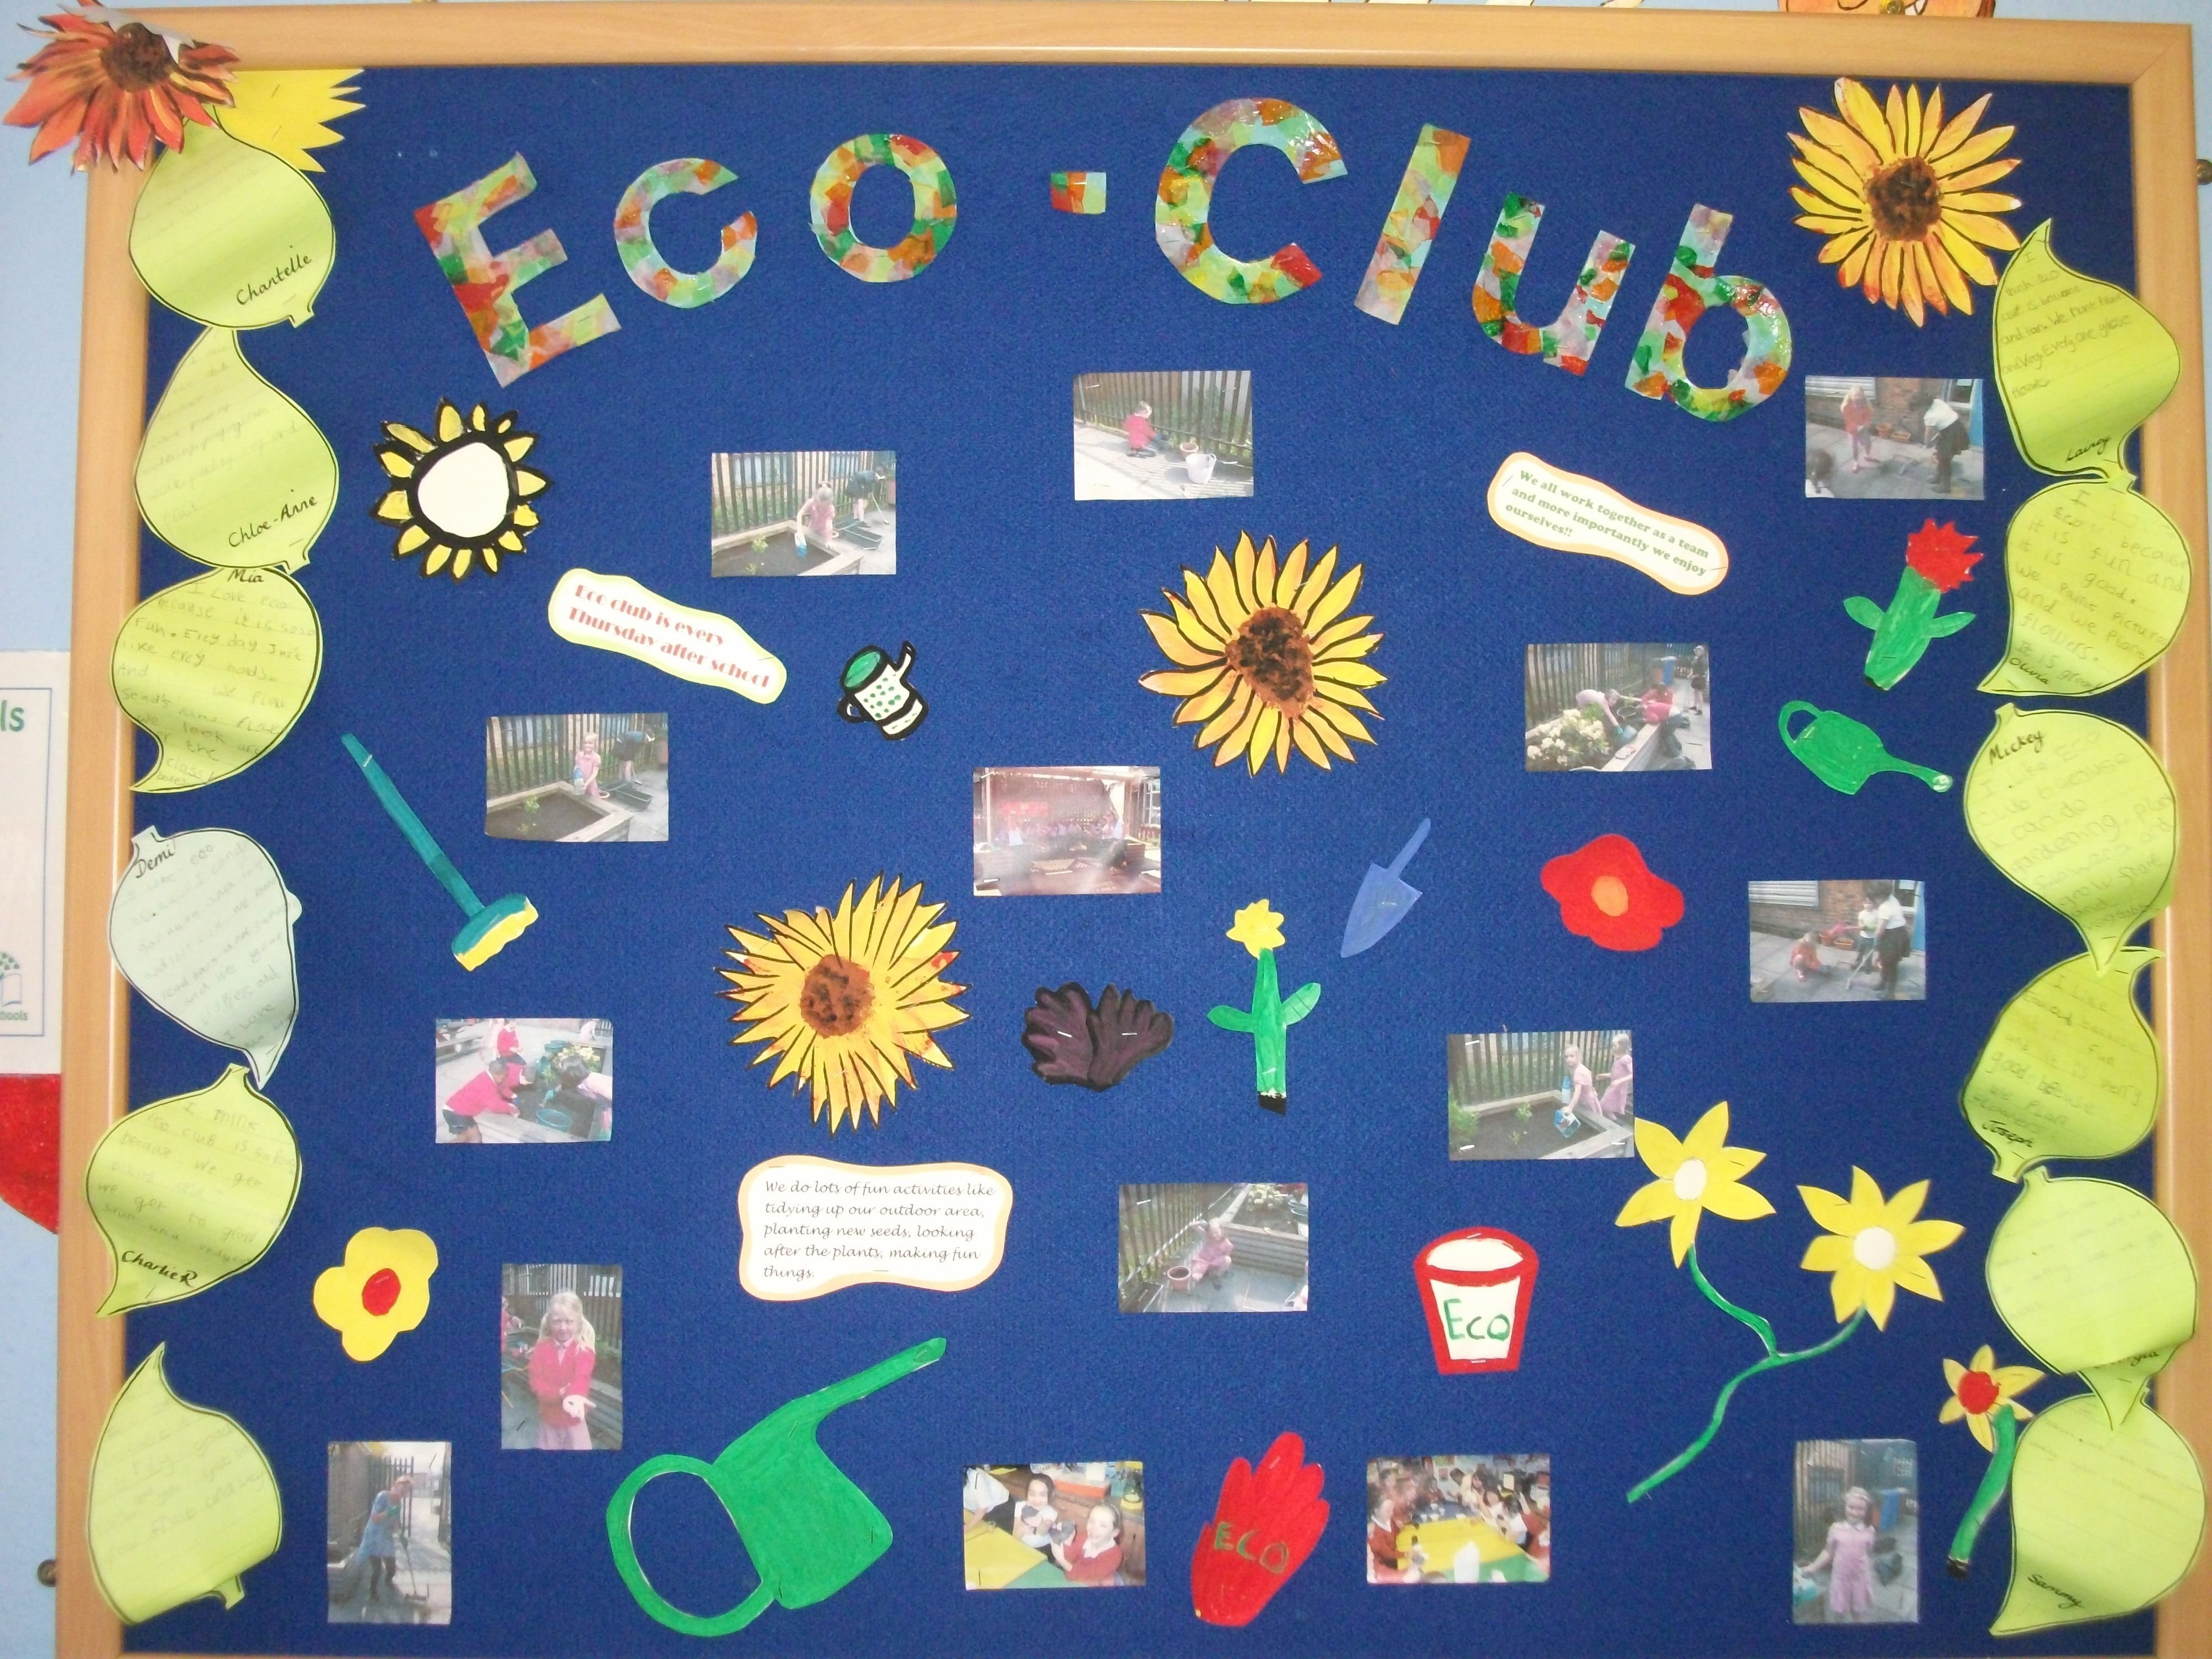 10 Beautiful Ideas For After School Clubs a beautiful idea from christ church school using our sundeala notice 2020